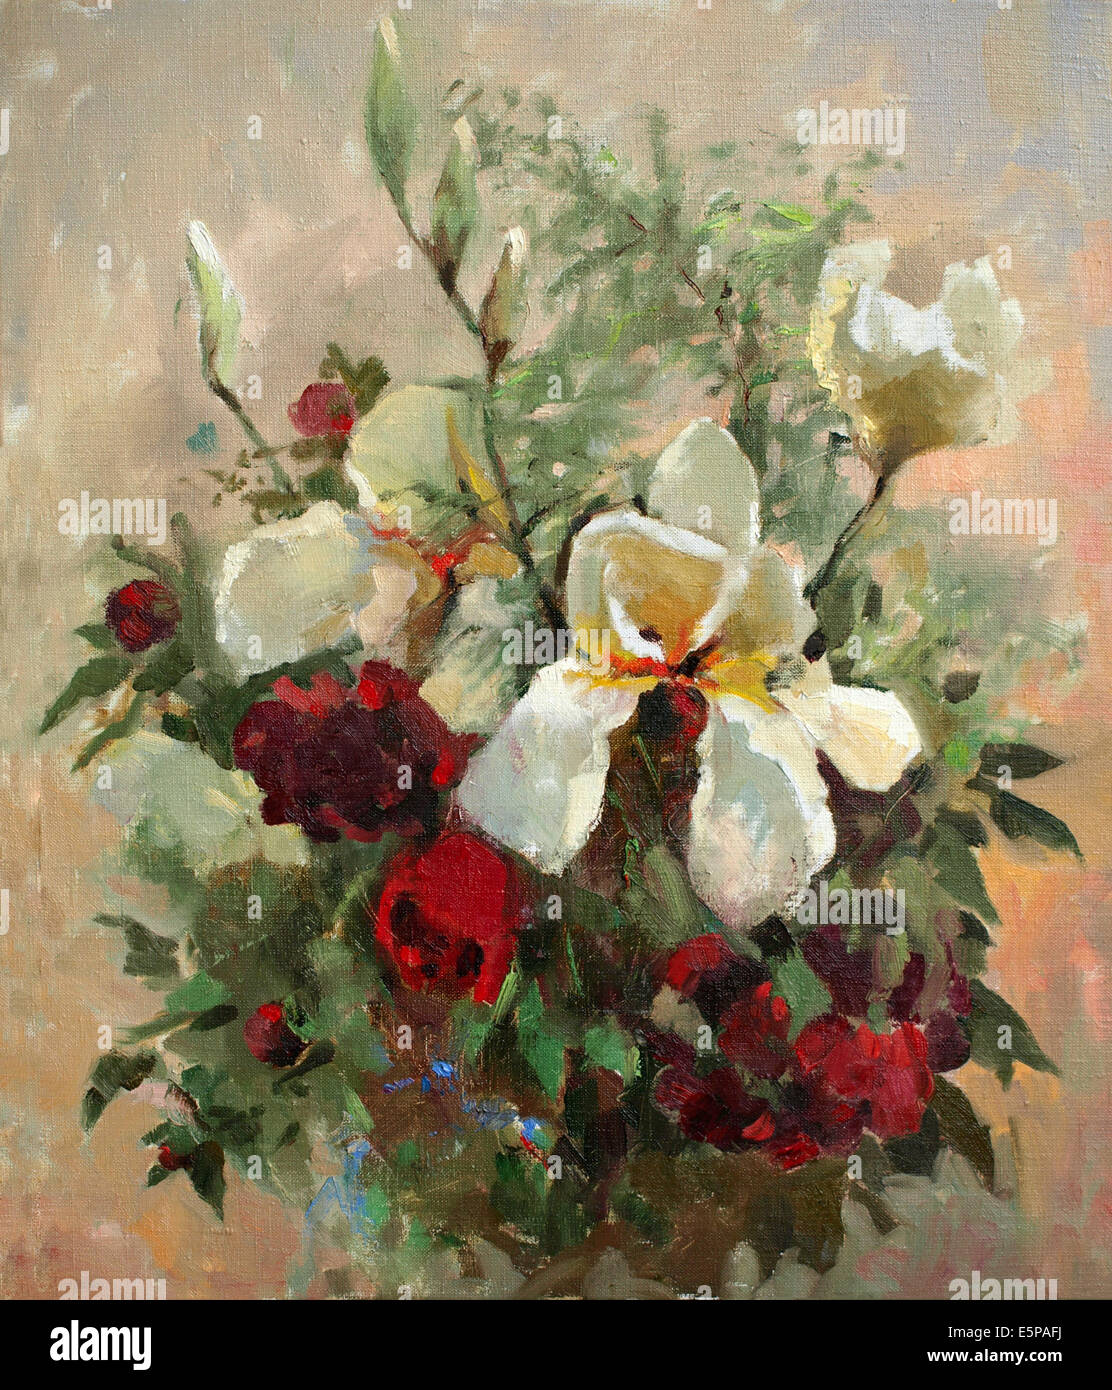 Oil Painting Beautiful Flowers Artwork Stock Photos Oil Painting